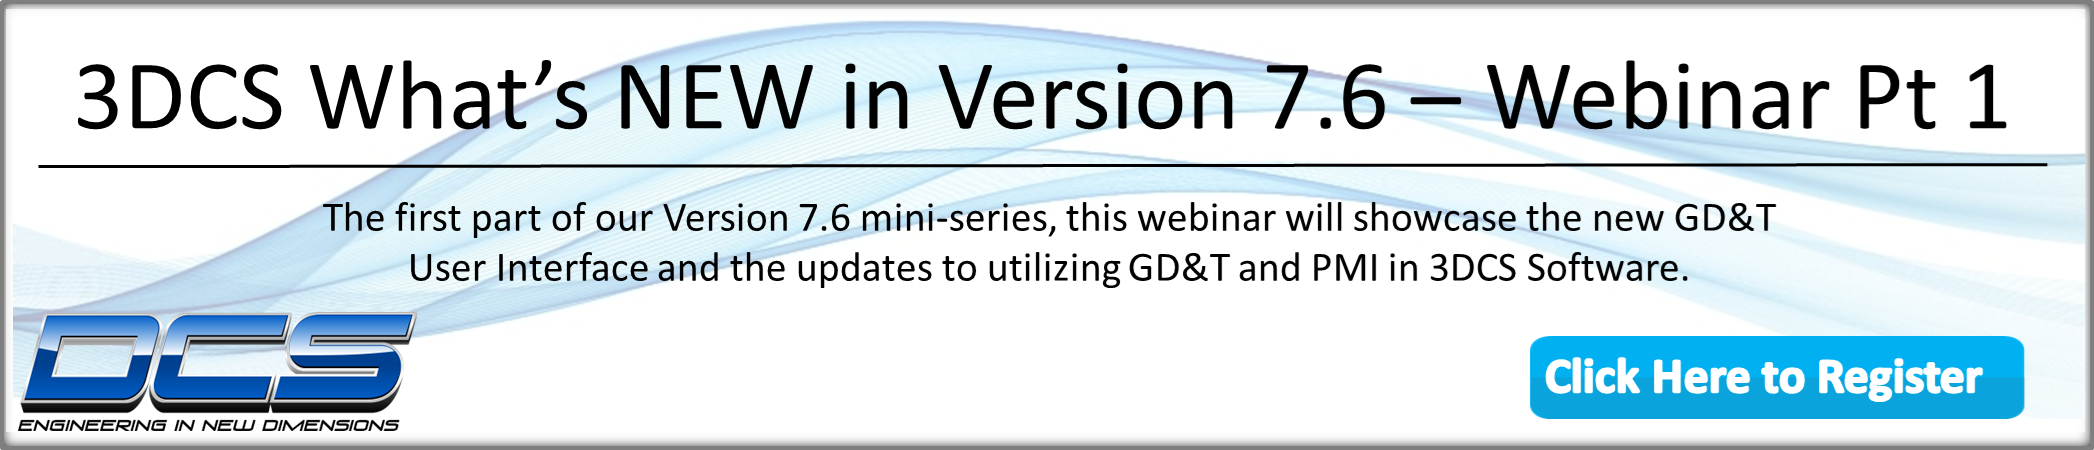 What is new in version 7.6 - GD&T Interface